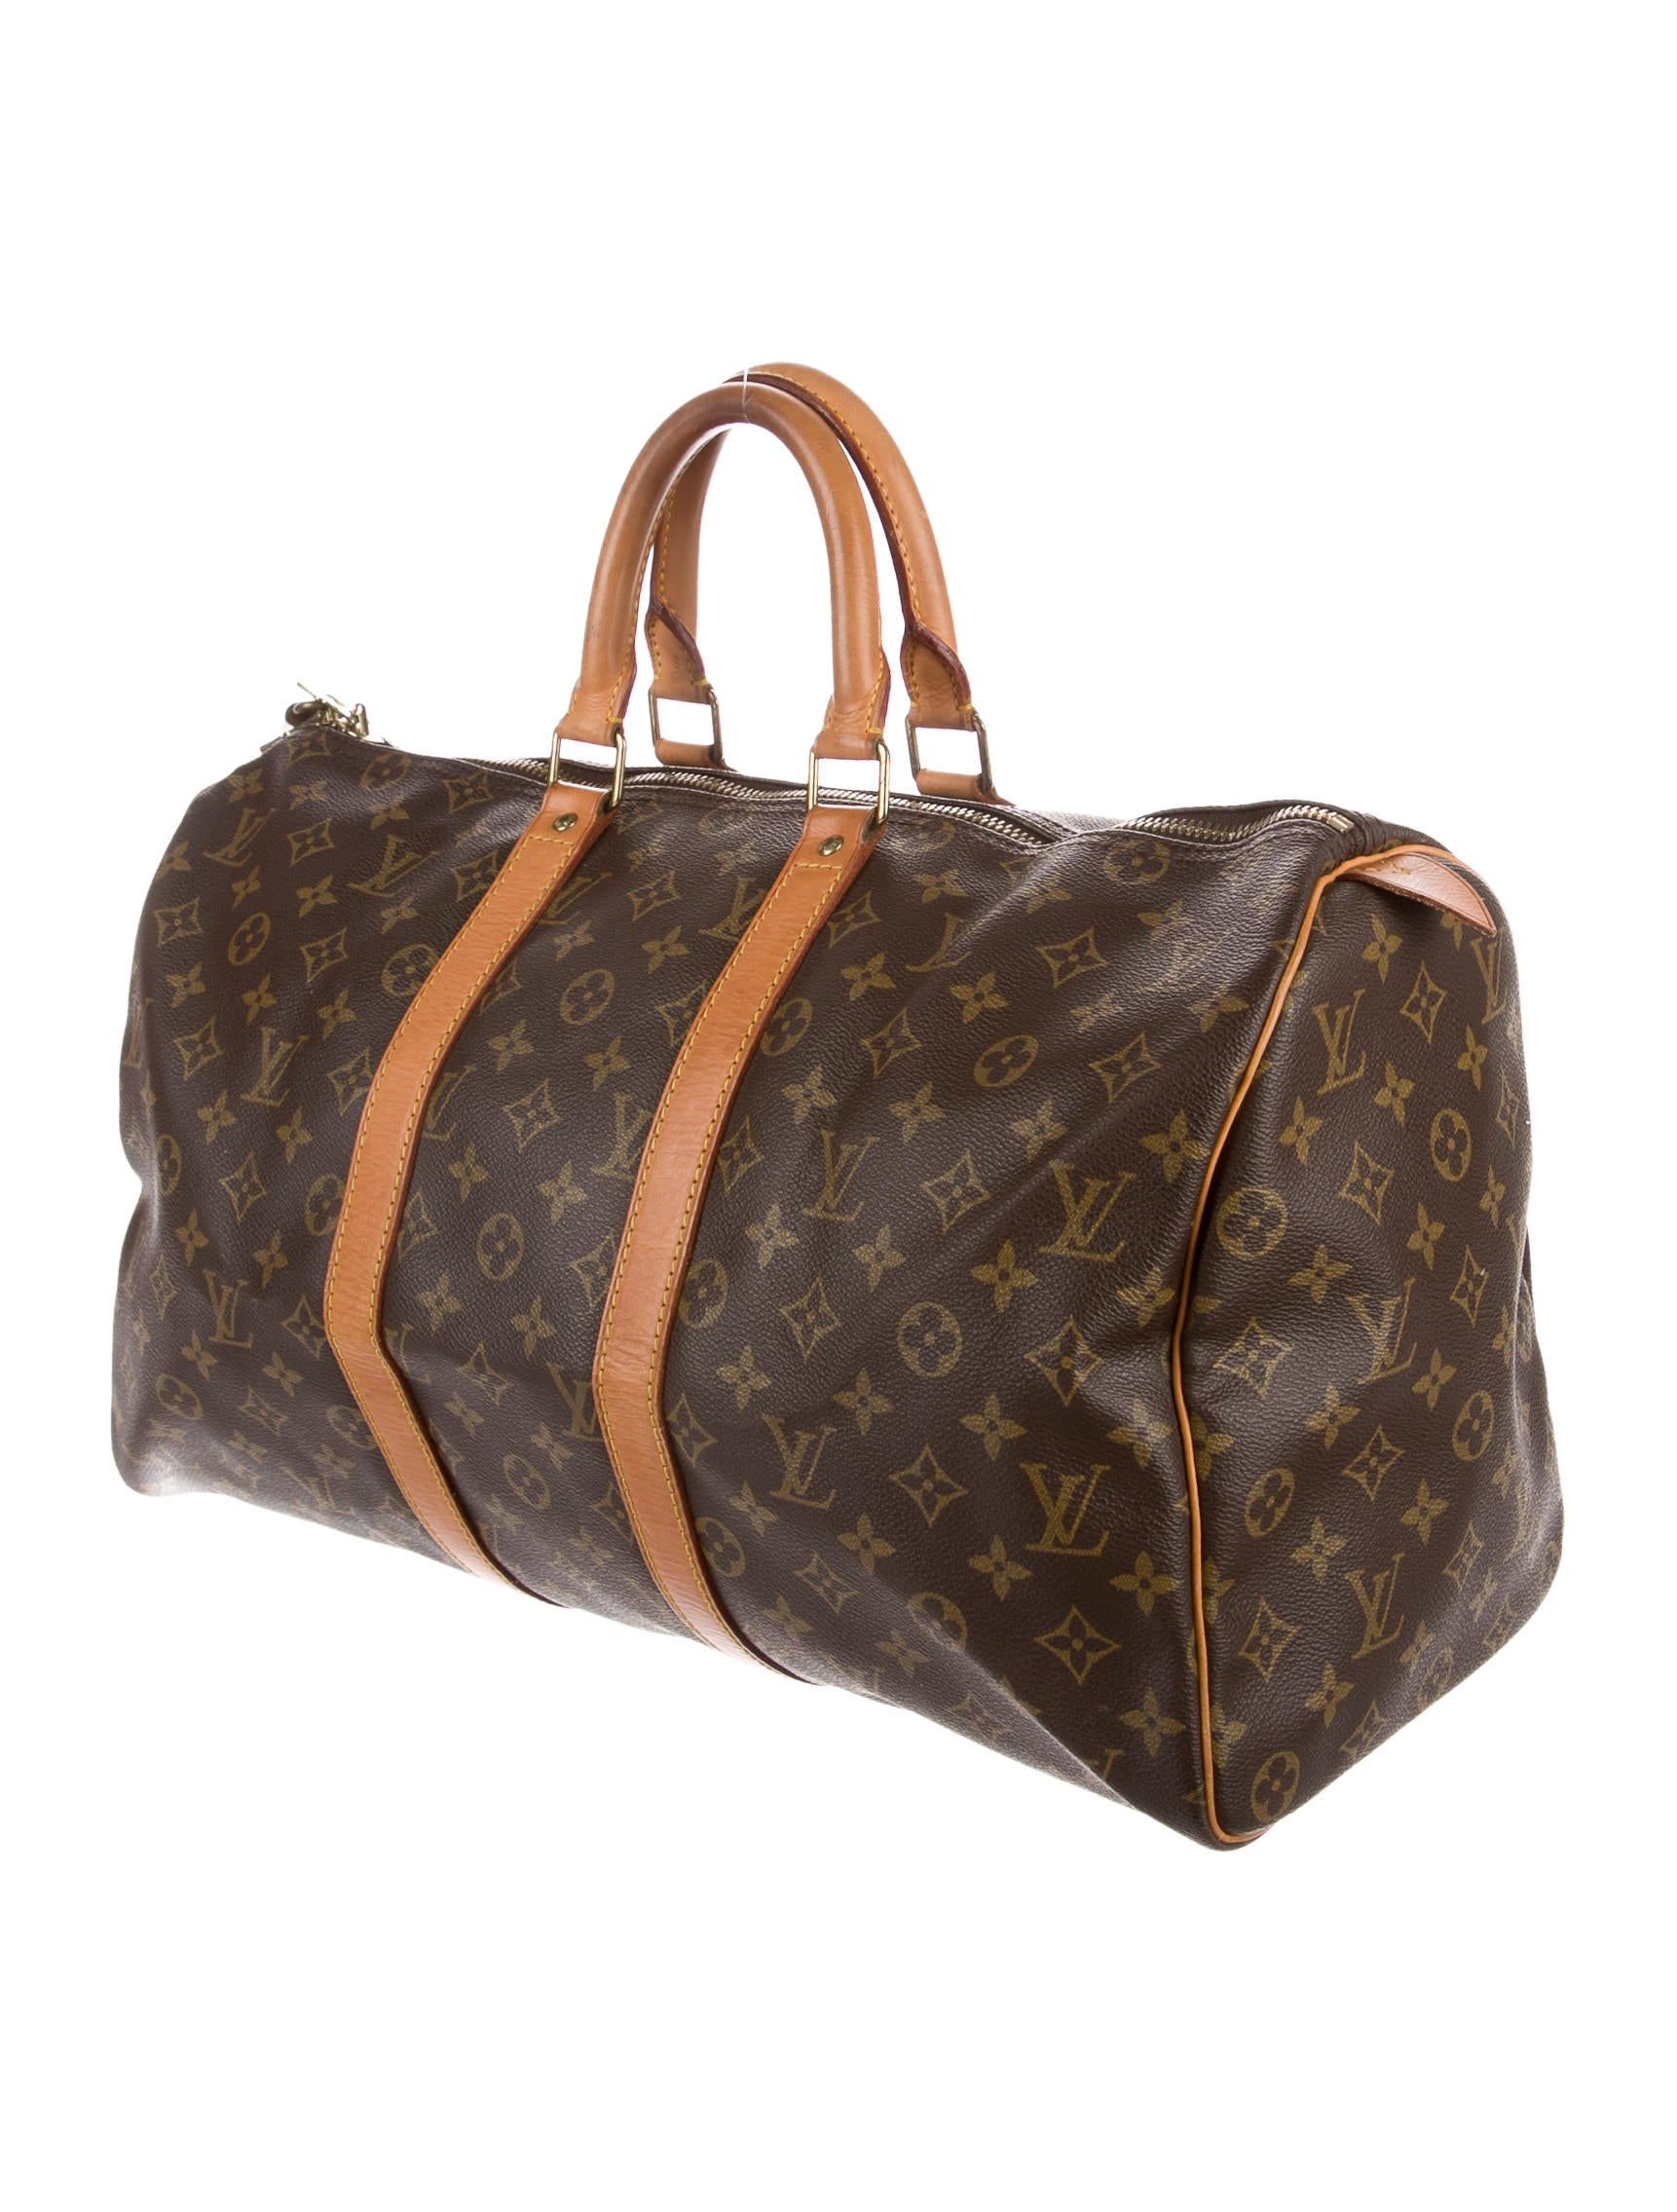 louis vuitton monogram keepall 45 handbags lou134086. Black Bedroom Furniture Sets. Home Design Ideas